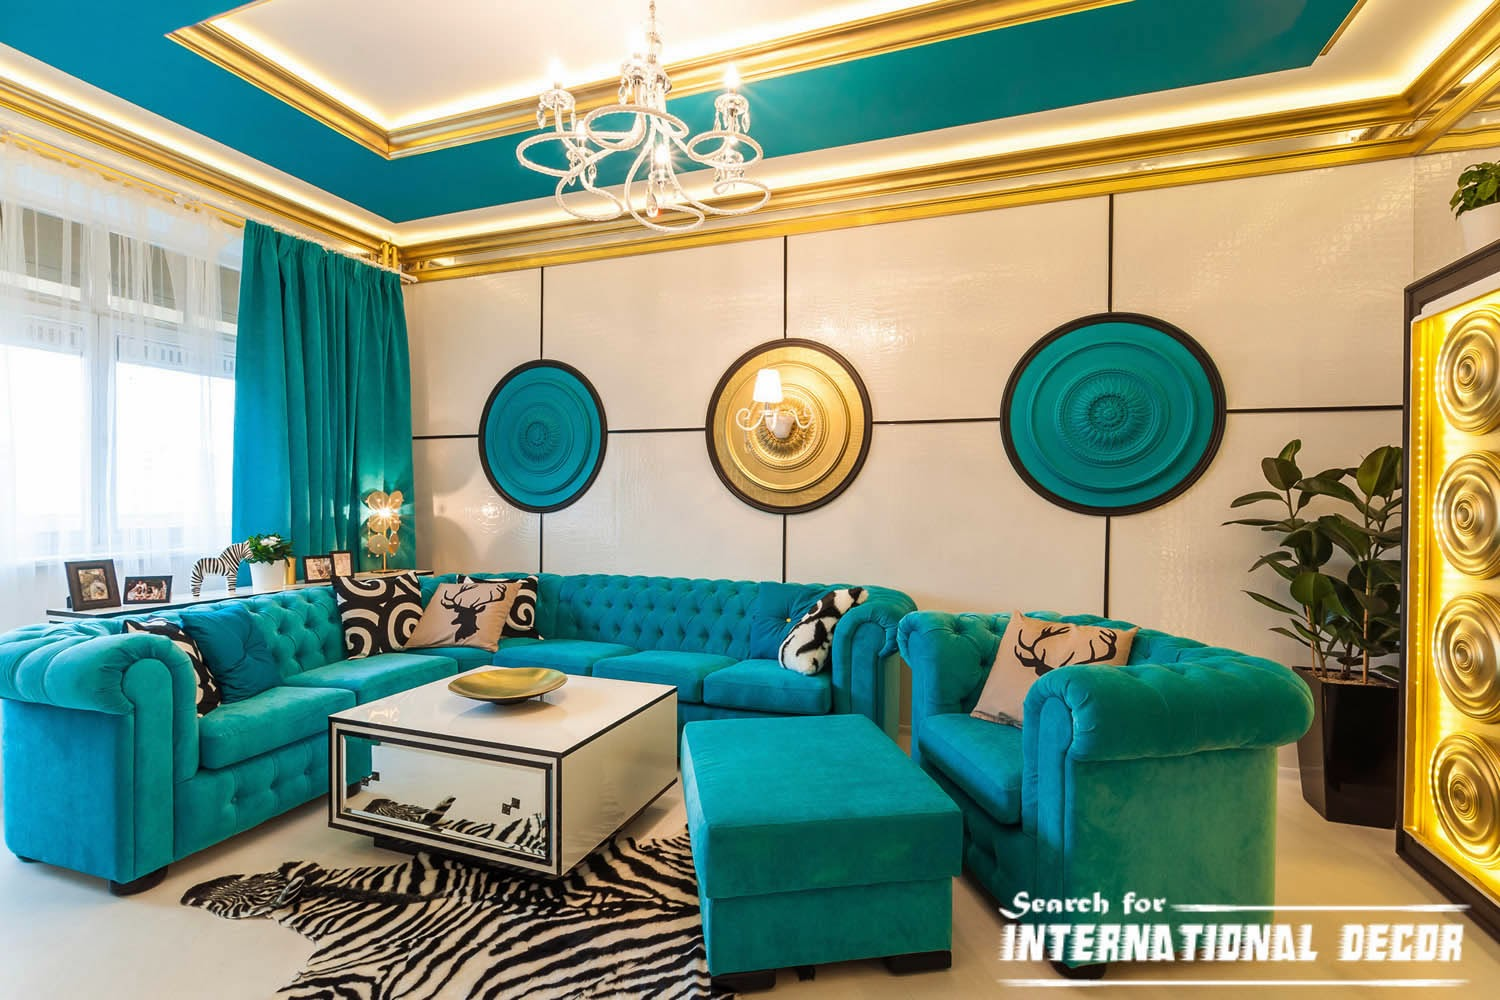 neoclassical style in the interior and furniture